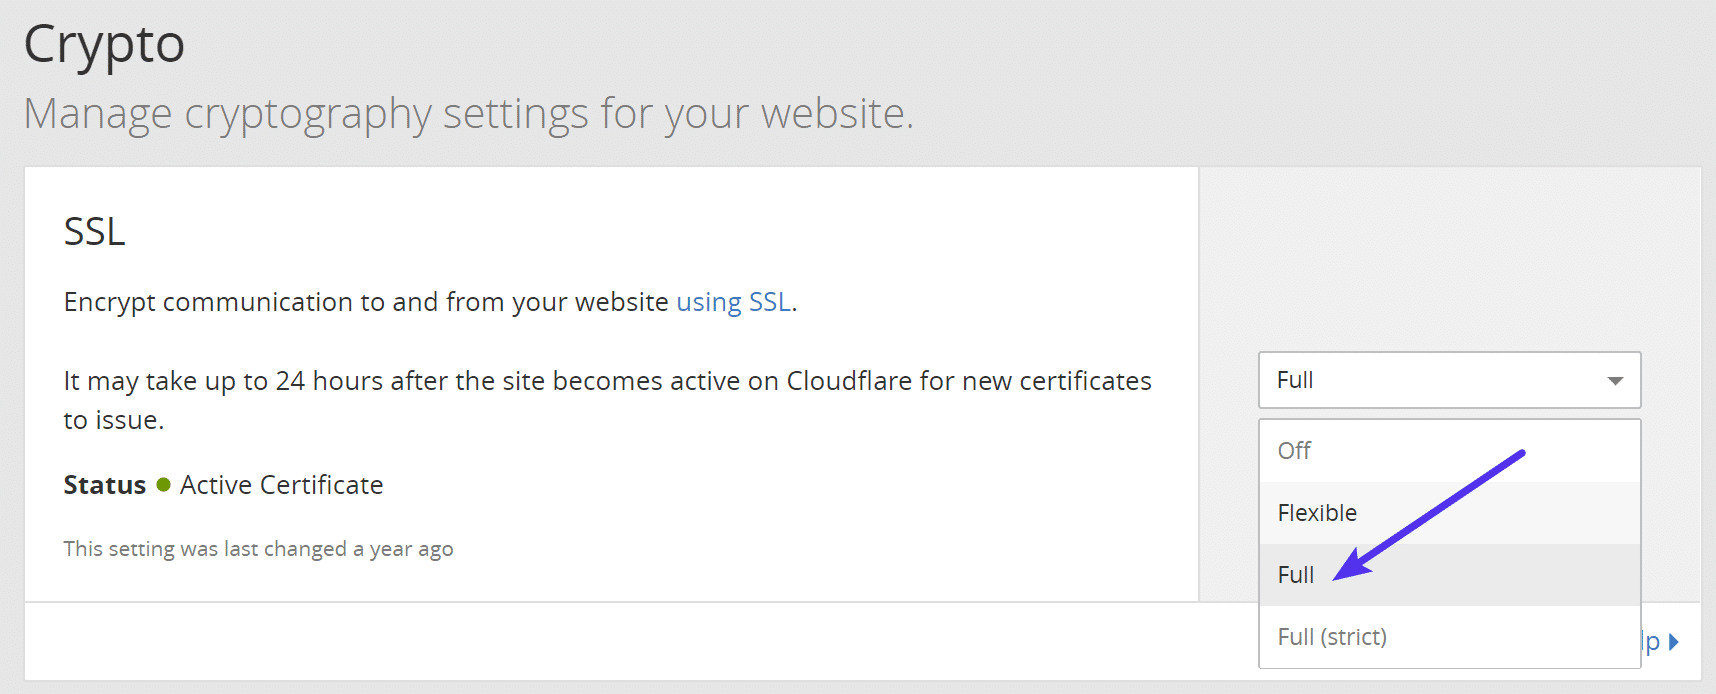 Stel Cloudflare crypto-niveau in op FULL